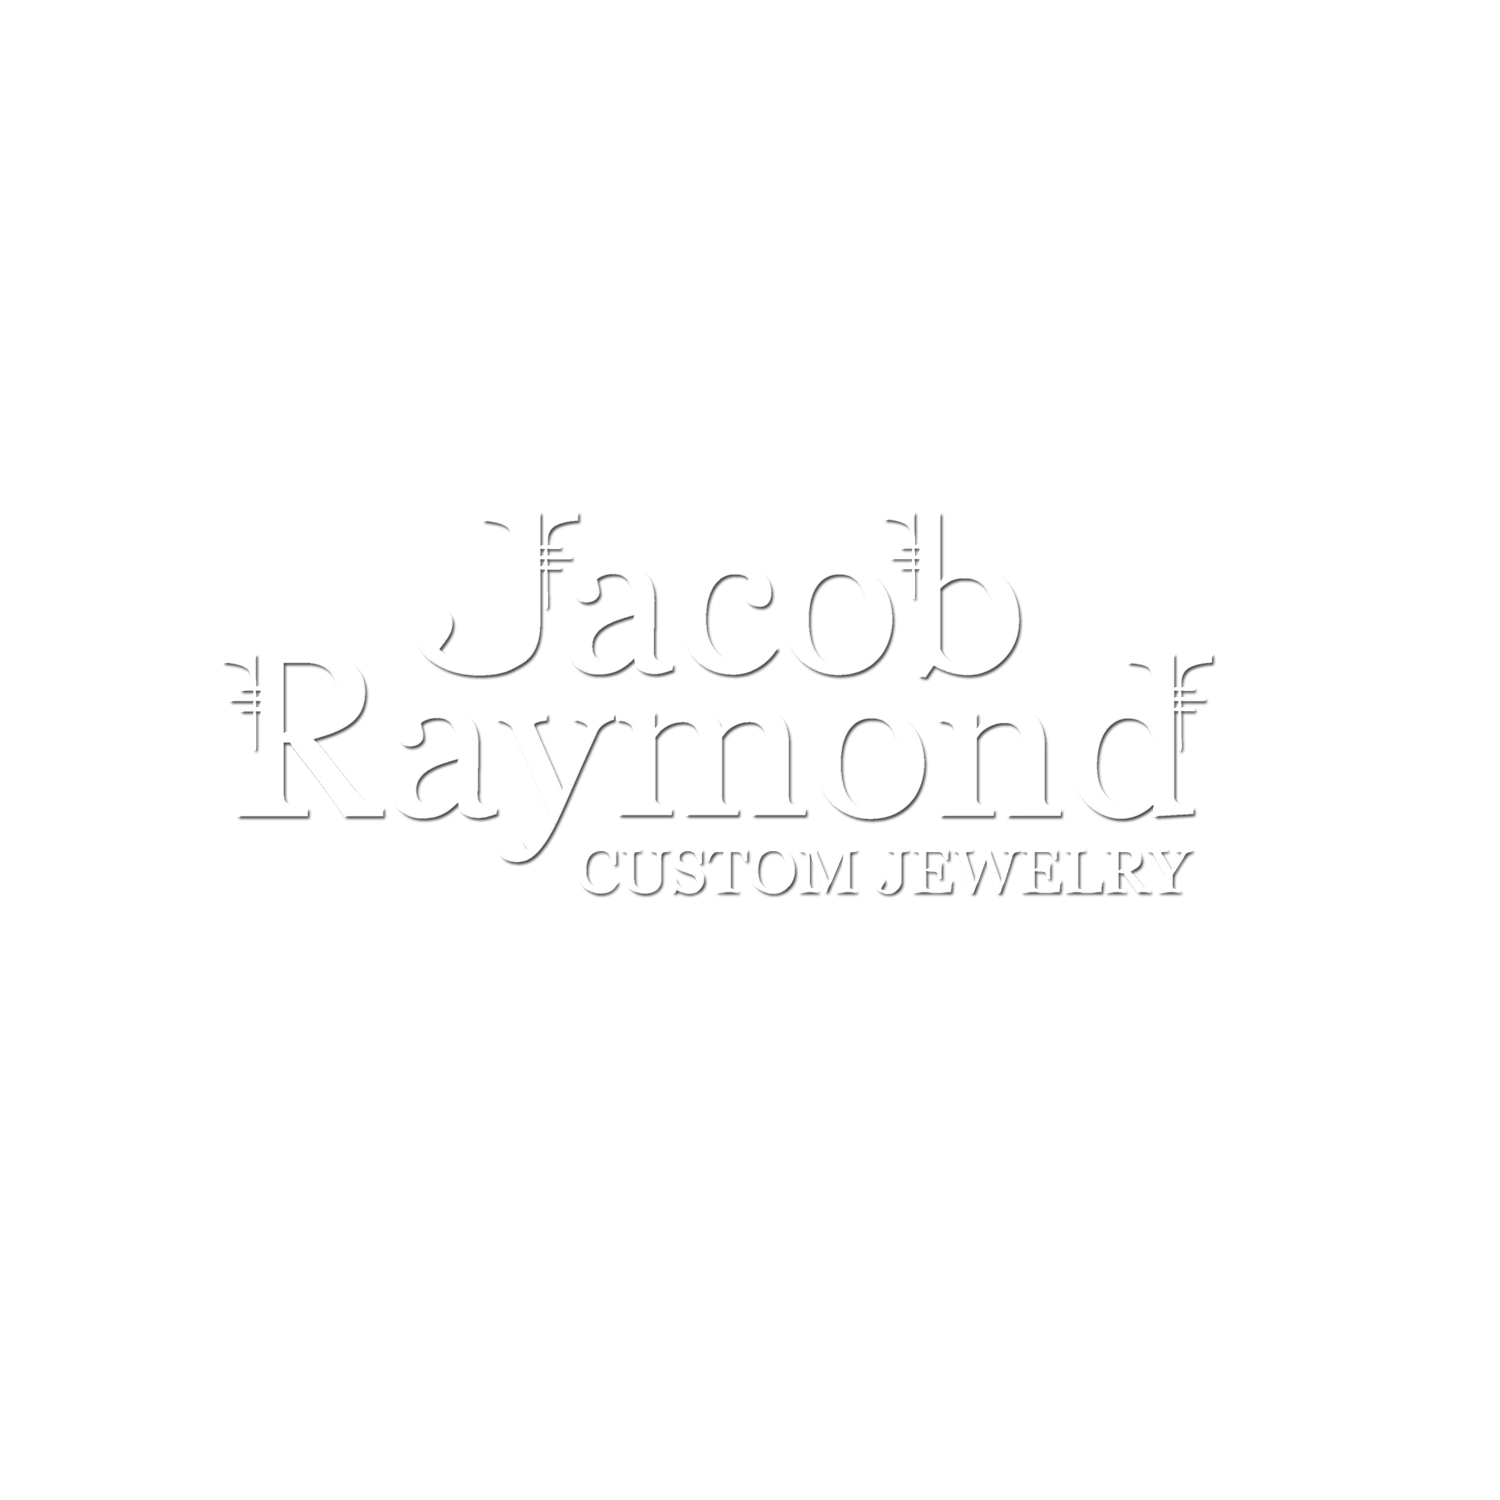 Jacob Raymond Custom Jewelry